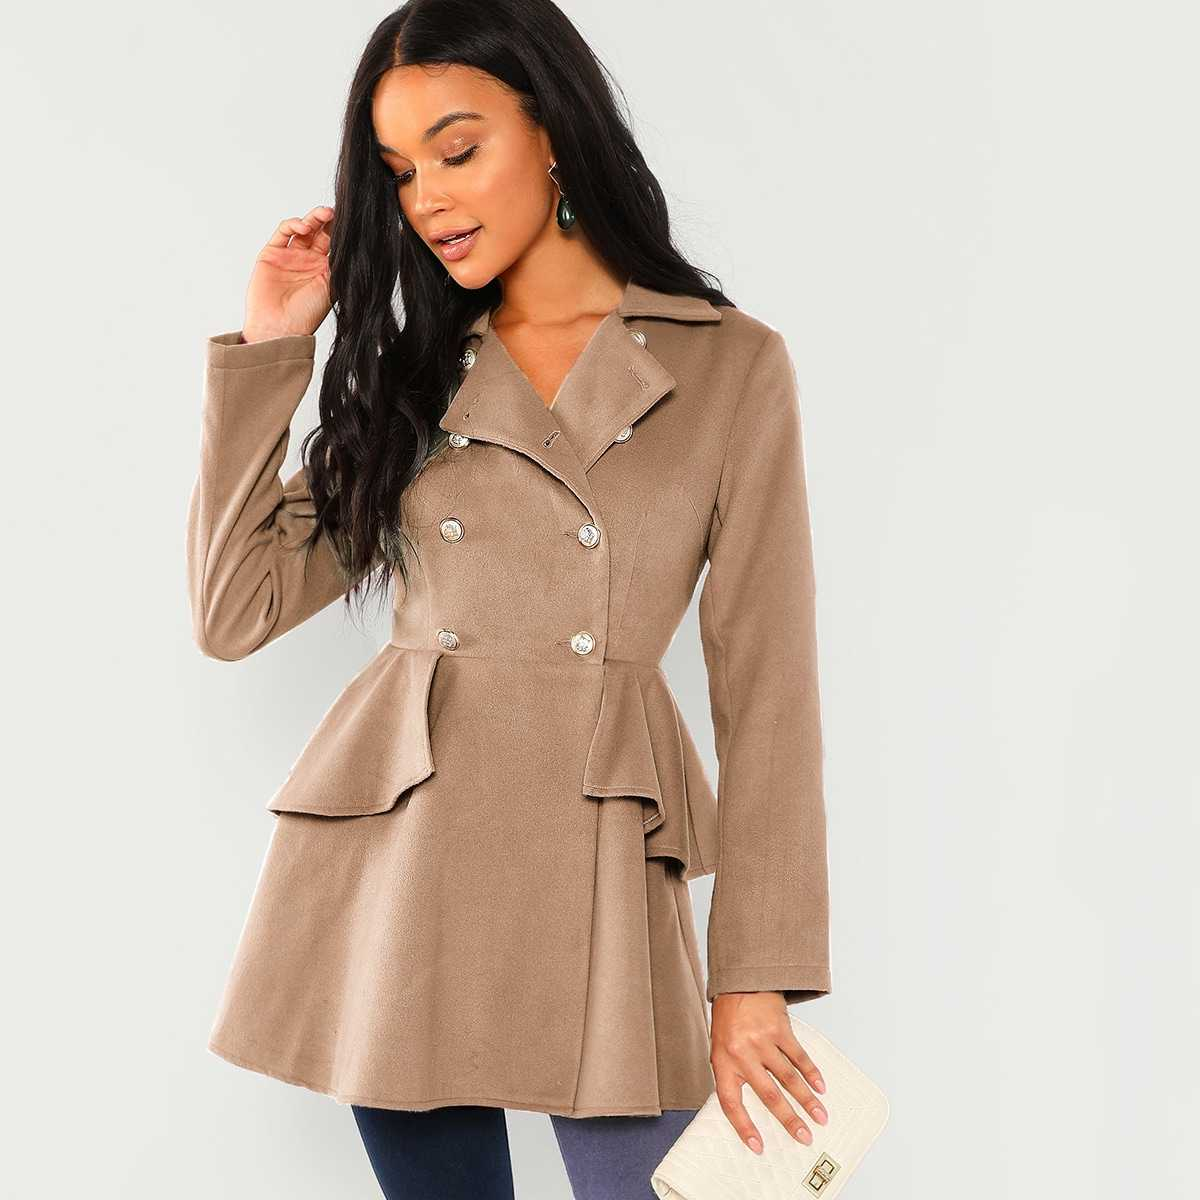 Double Breasted Ruffle Solid Coat in Khaki by ROMWE on GOOFASH